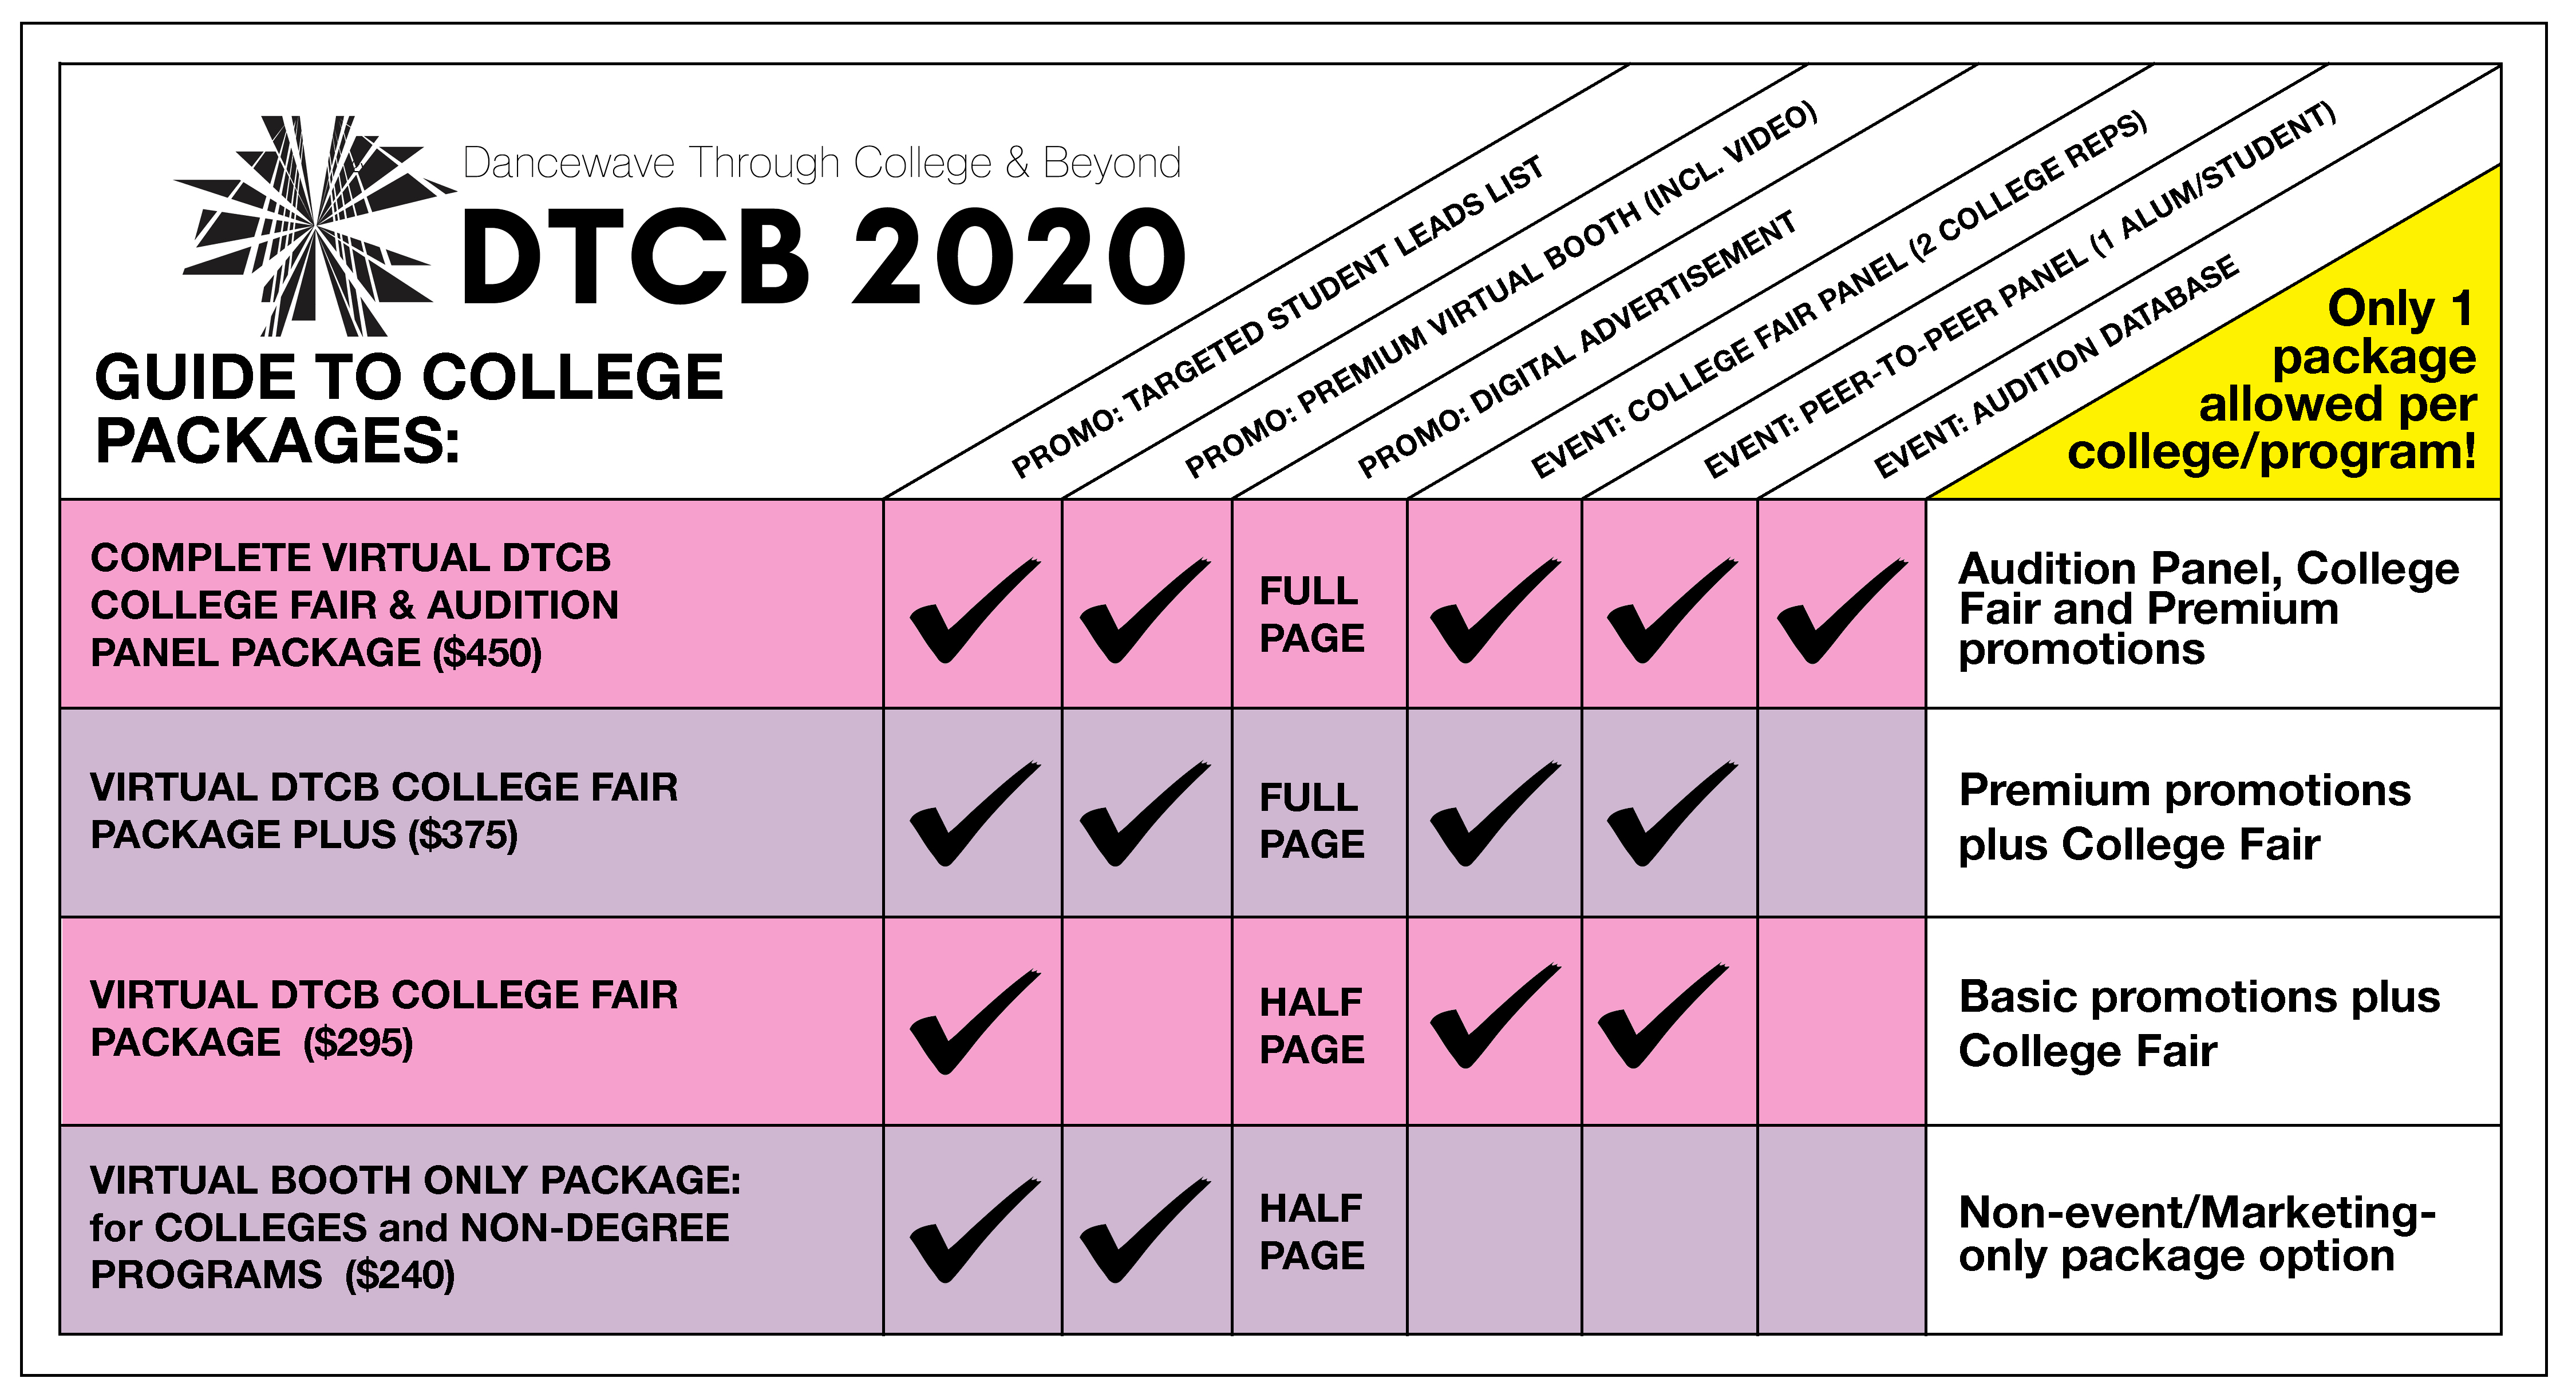 DTCB 2020 Packages